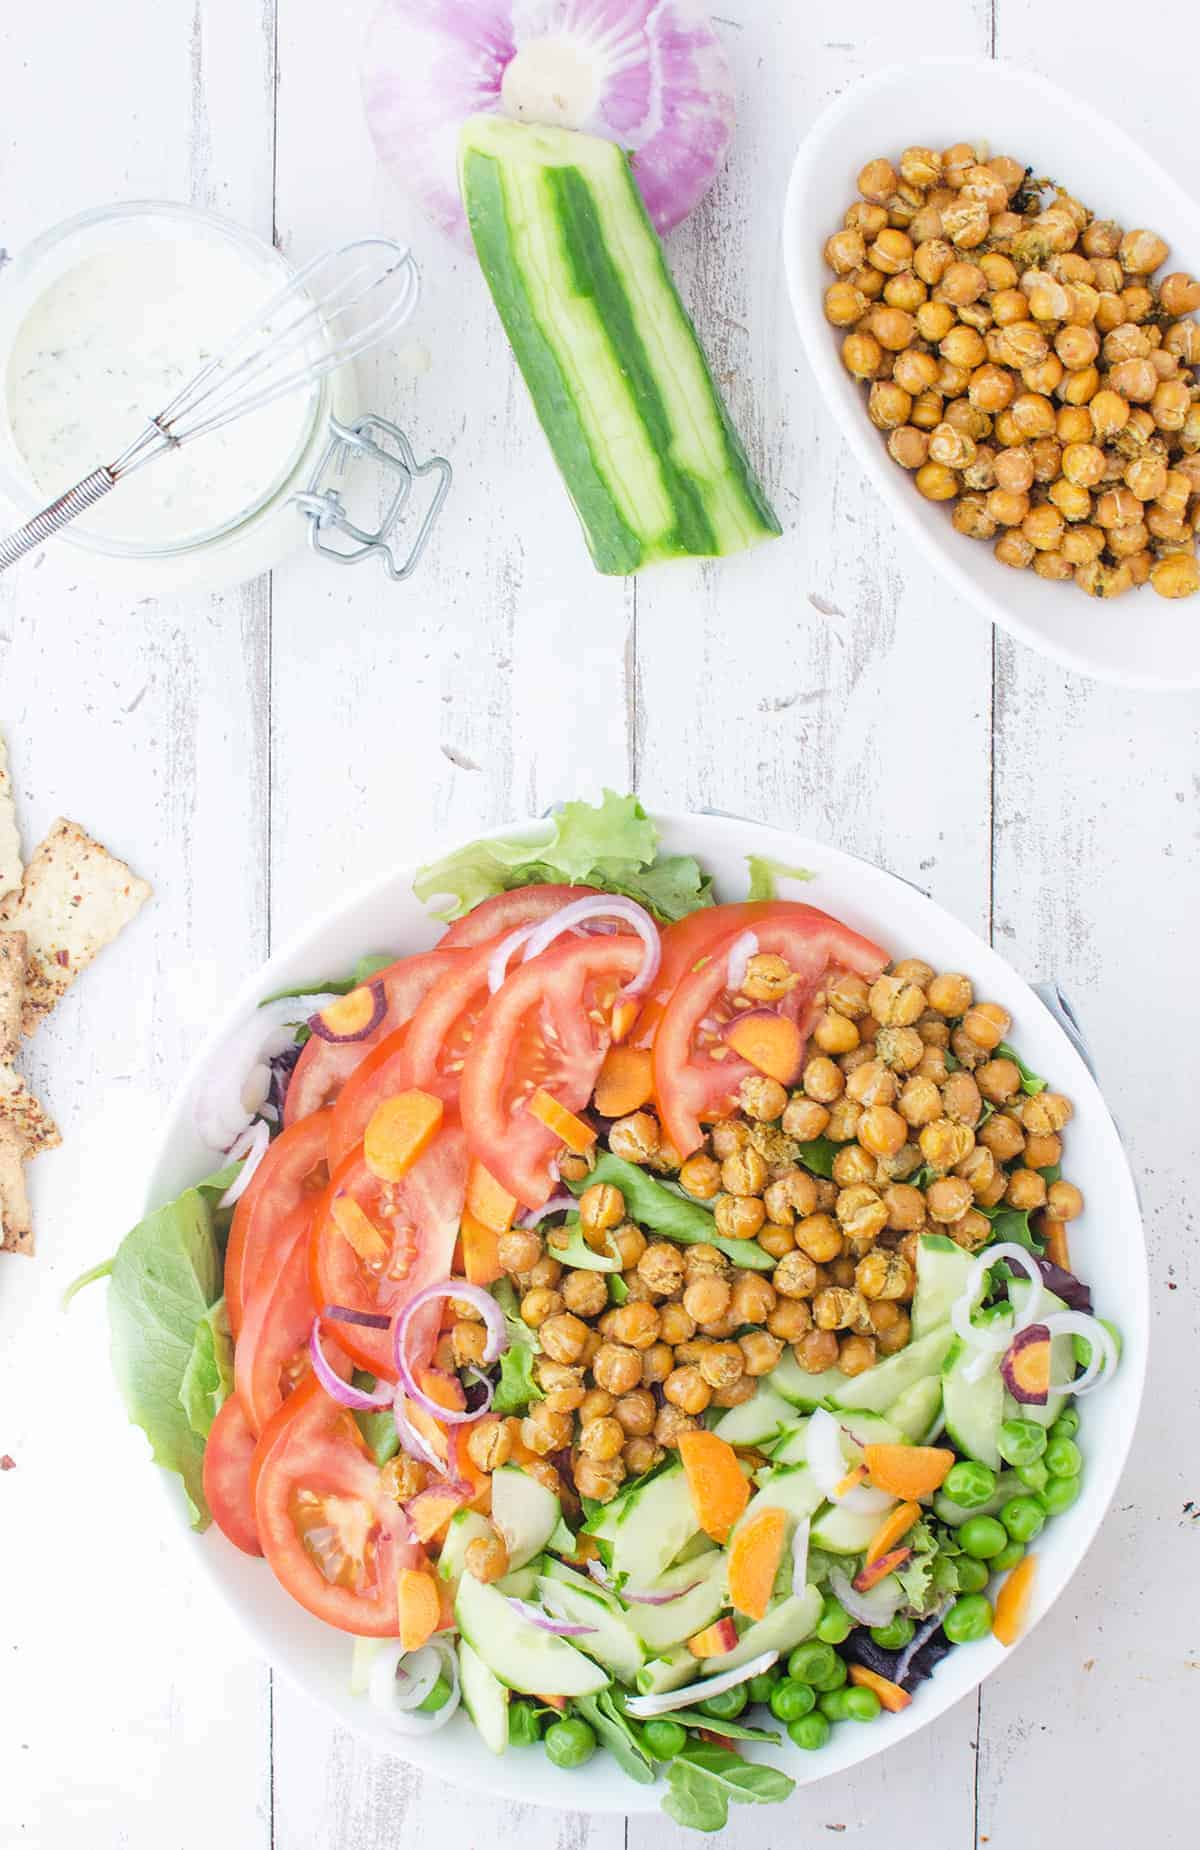 Vegan and Gluten Free Ranch Bowls! These salads bowls are packed with vegetables and ranch roasted chickpeas! 250 calories, 11g fiber, 12g protein. | www.delishknowledge.com